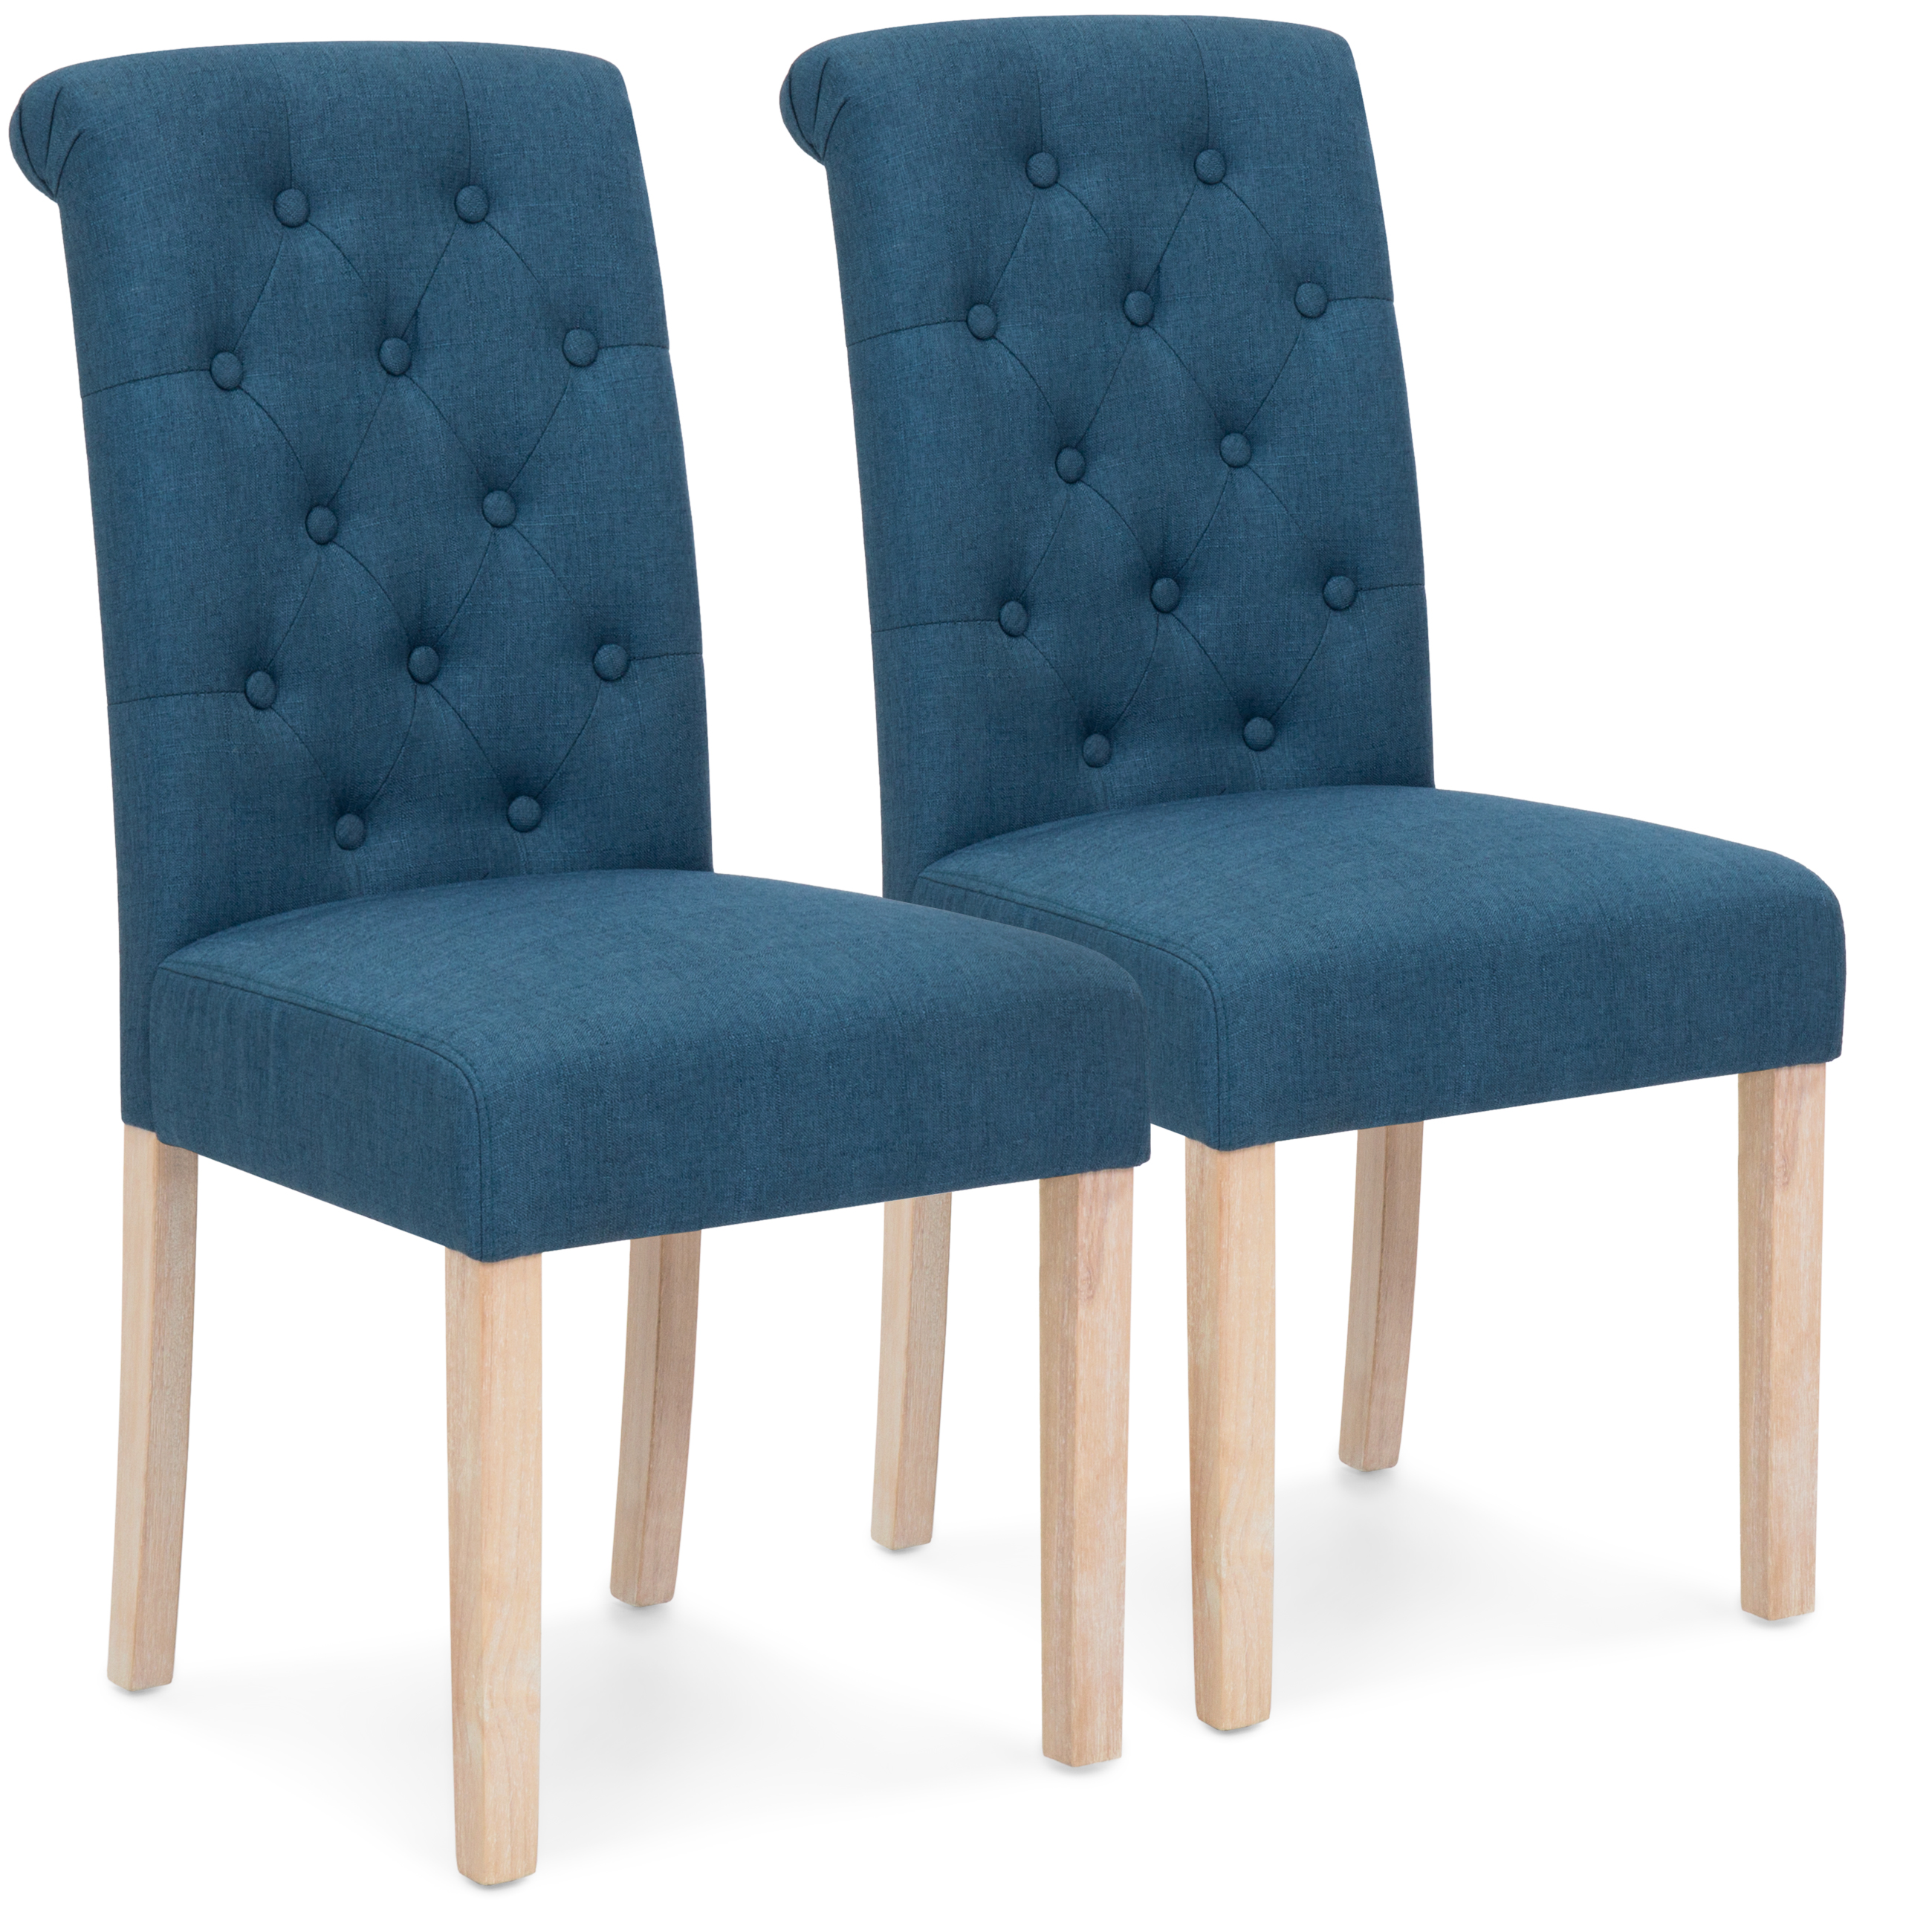 high back tufted chair hon volt with arms best choice products set of 2 parsons dining chairs blue walmart com